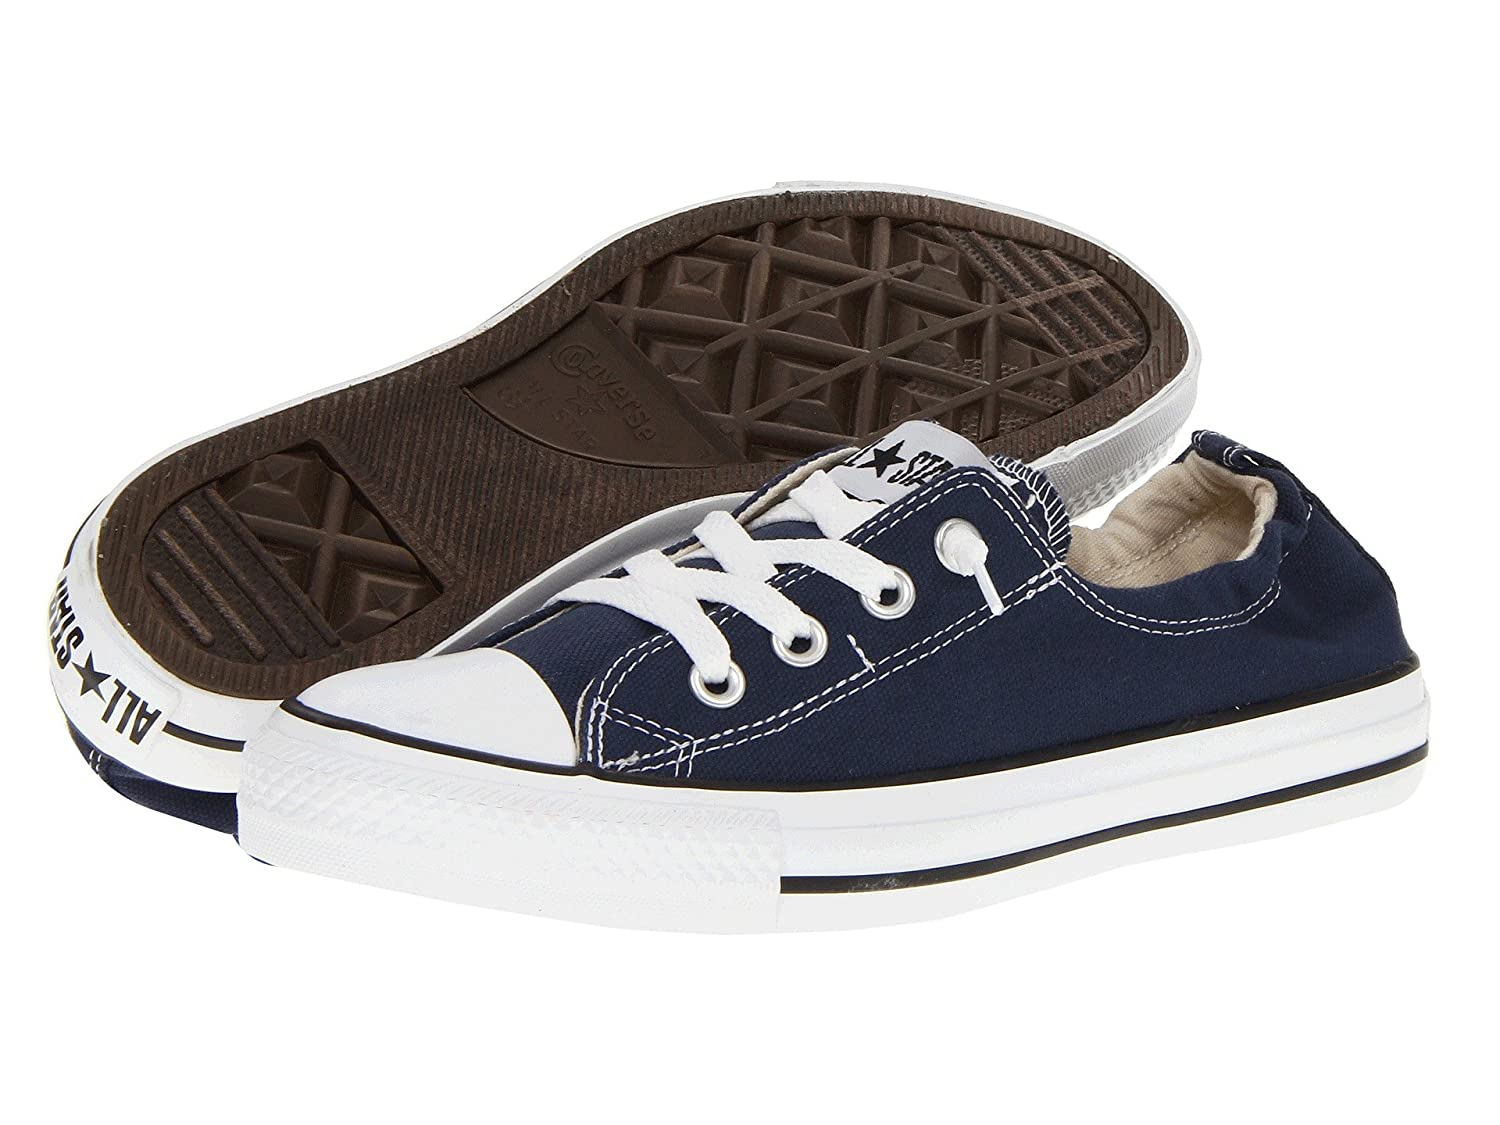 CONVERSE Designer - Chucks Schuhe - ALL STAR - Designer Marineblau (Athletic Navy) 32f83c